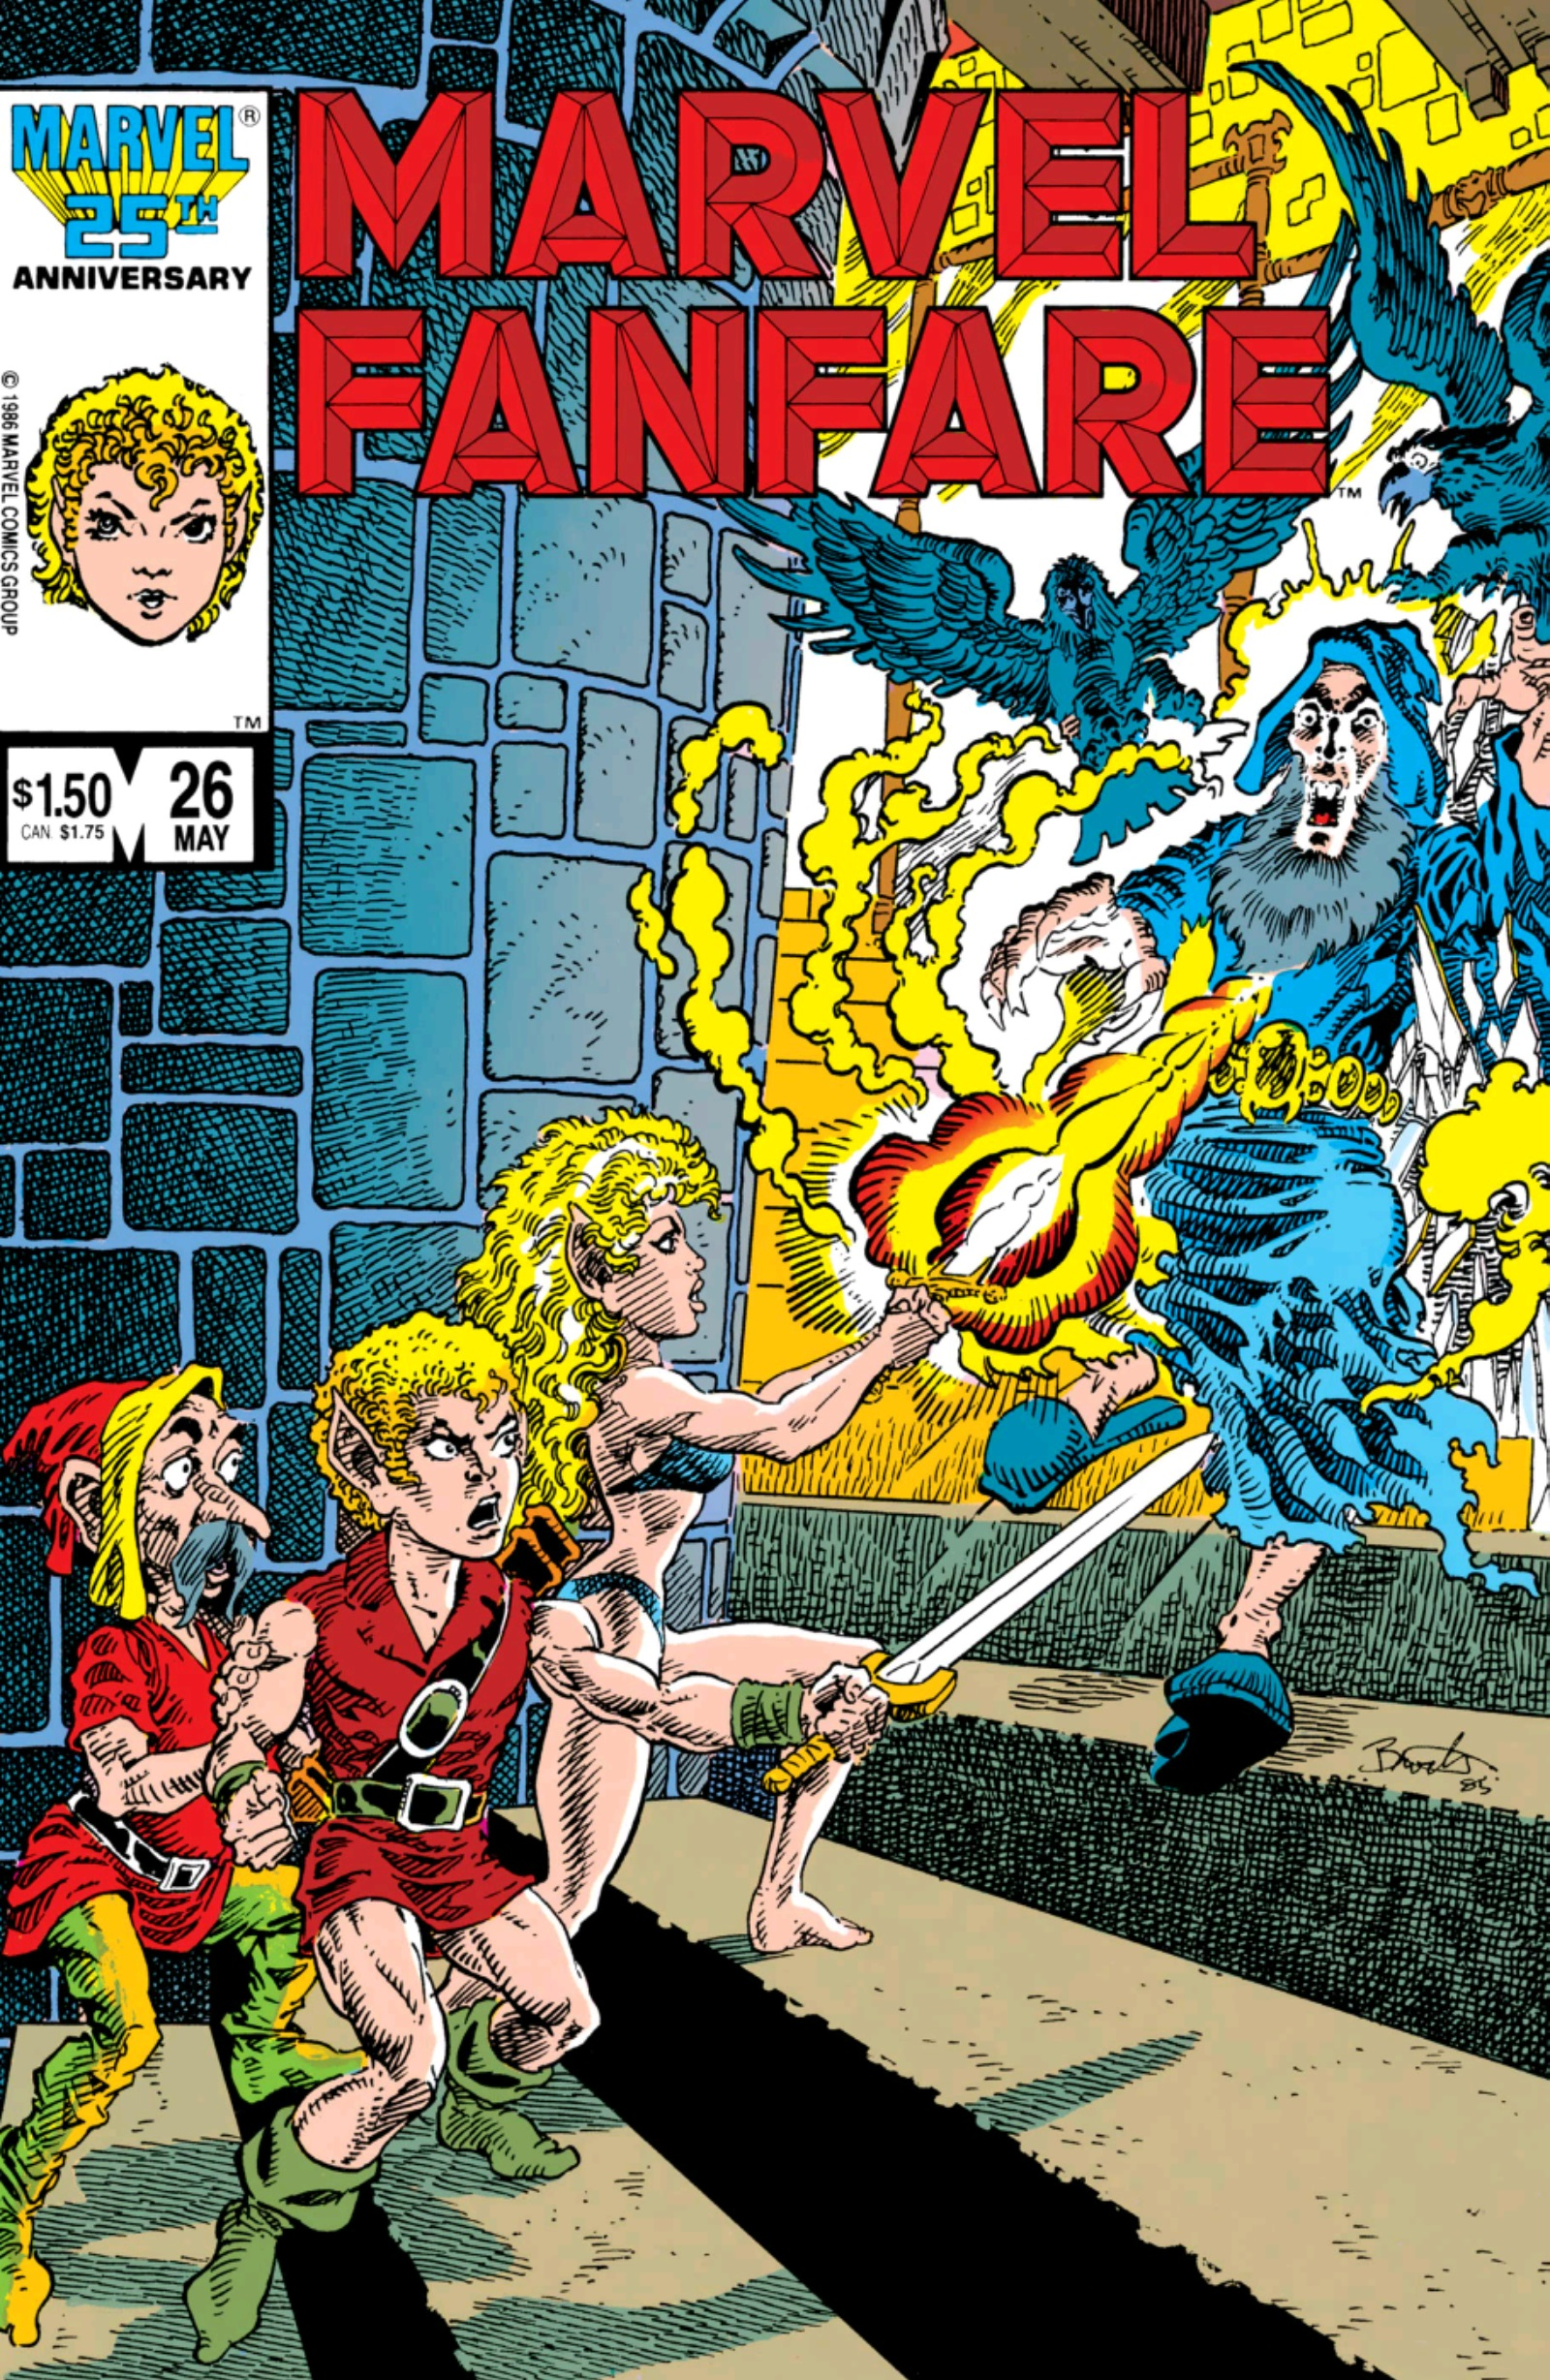 Marvel Fanfare Vol 1 26